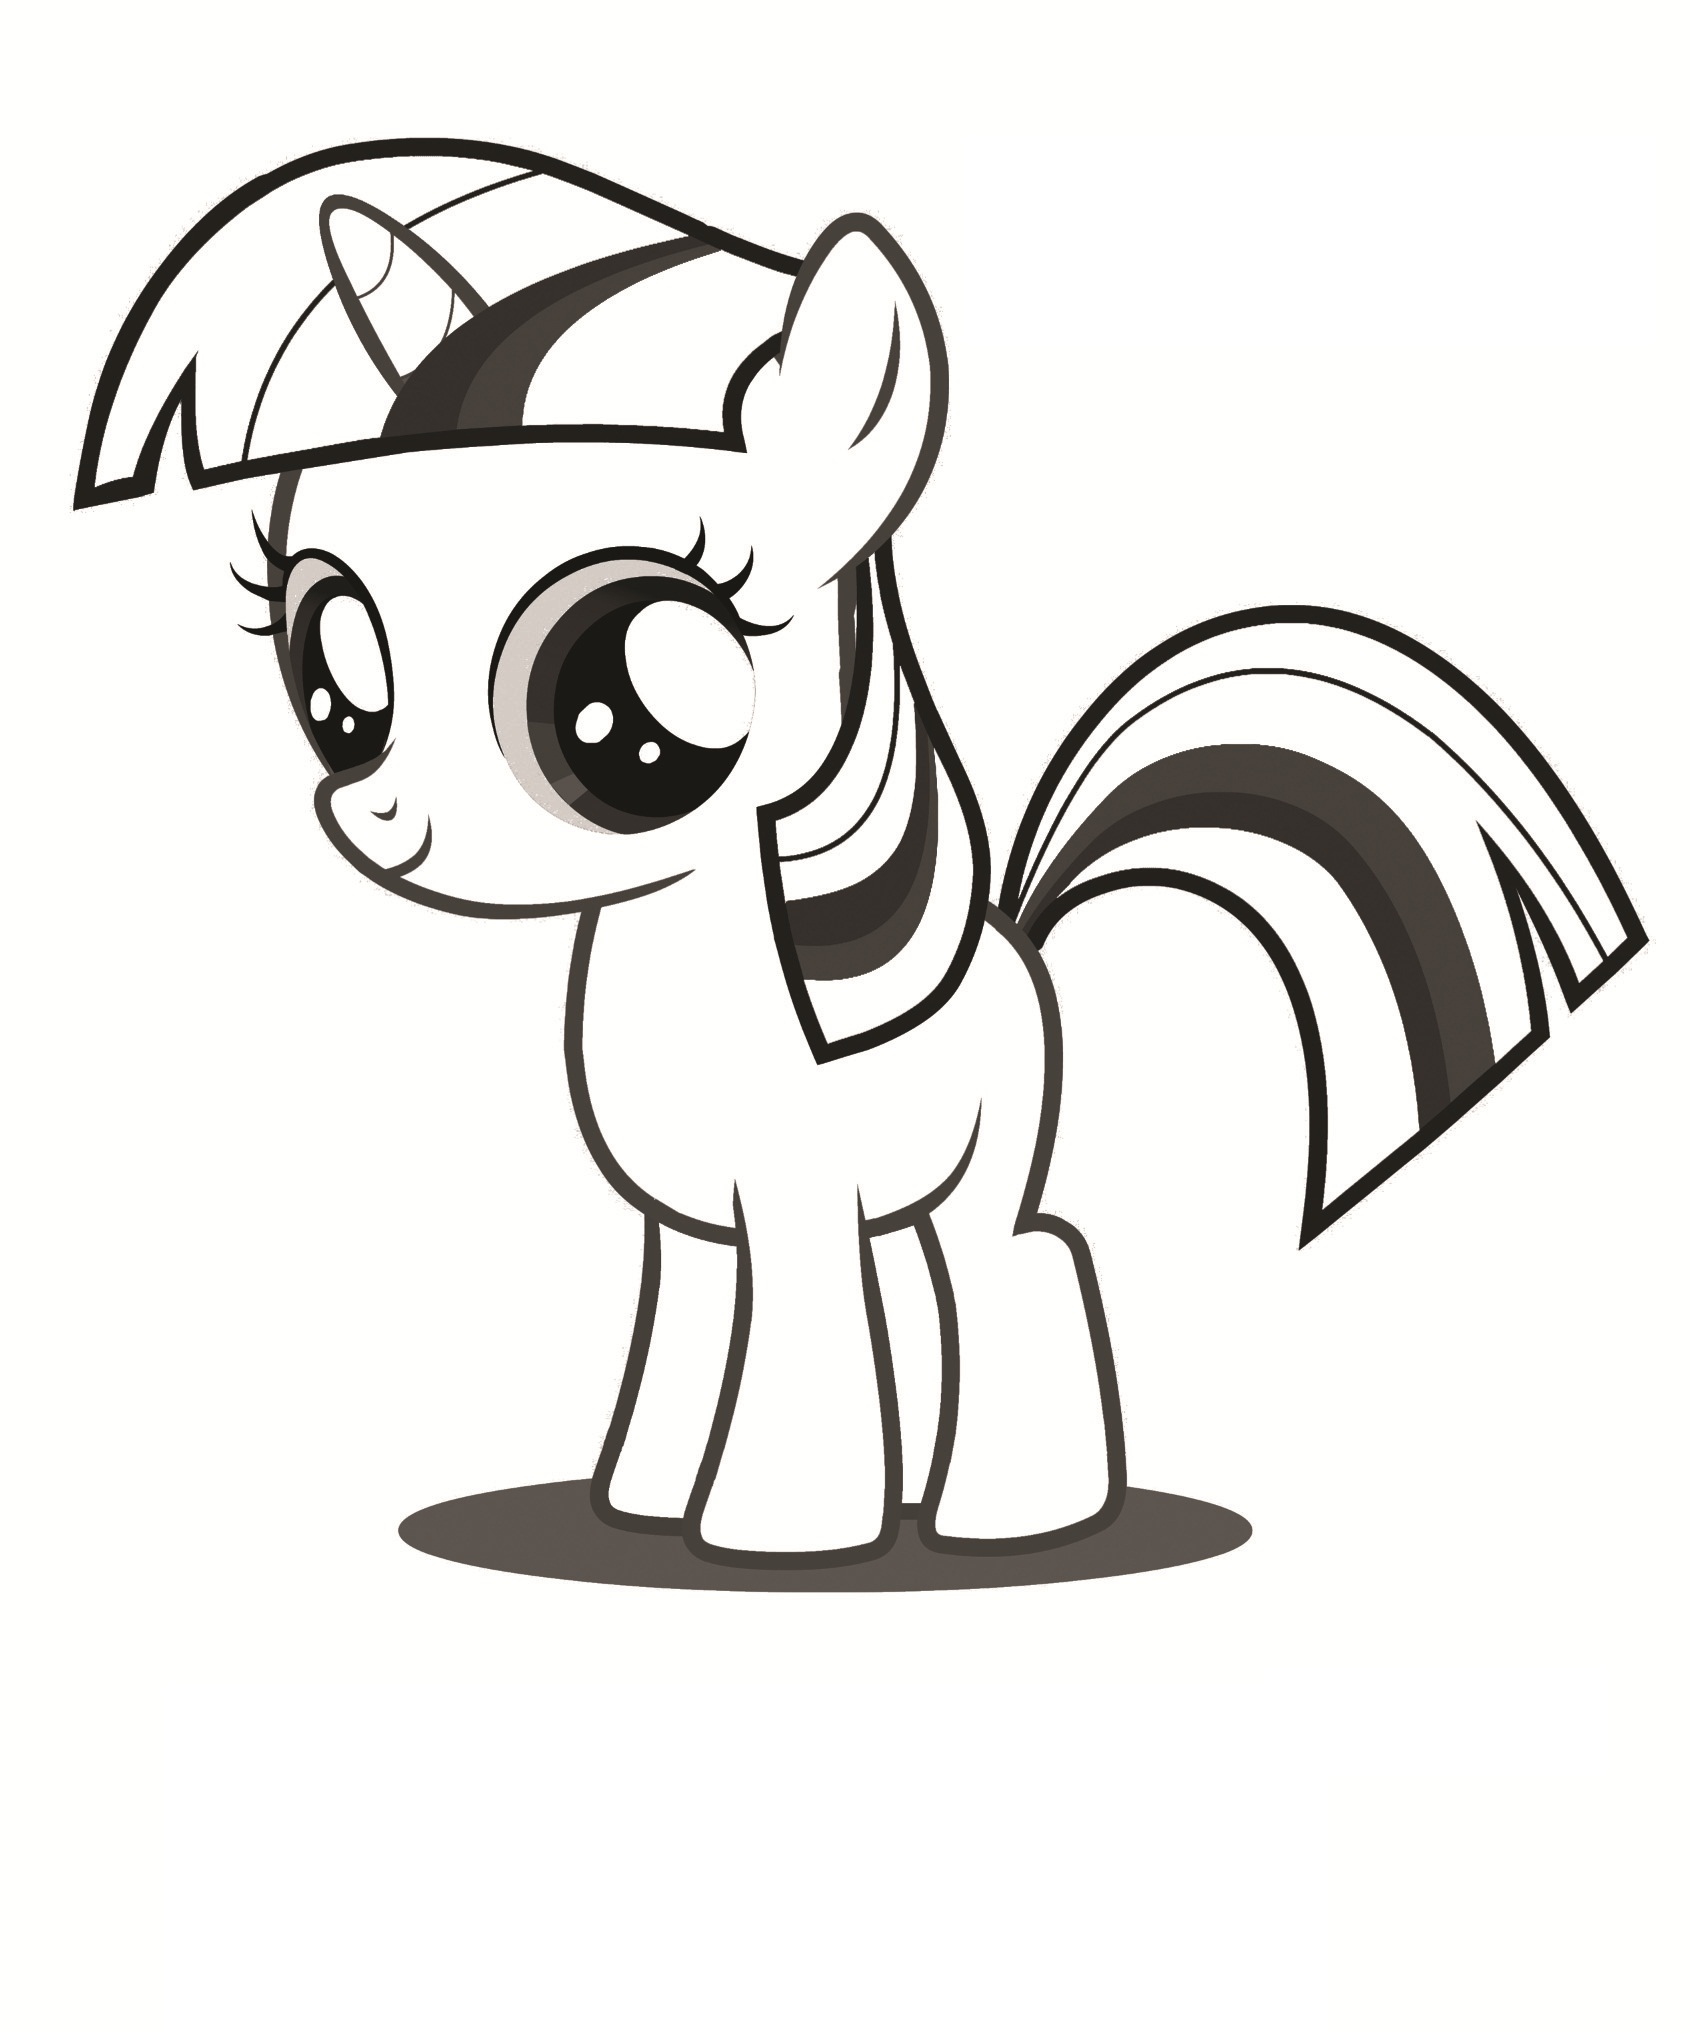 my little pony free coloring pages - Free Coloring Pictures